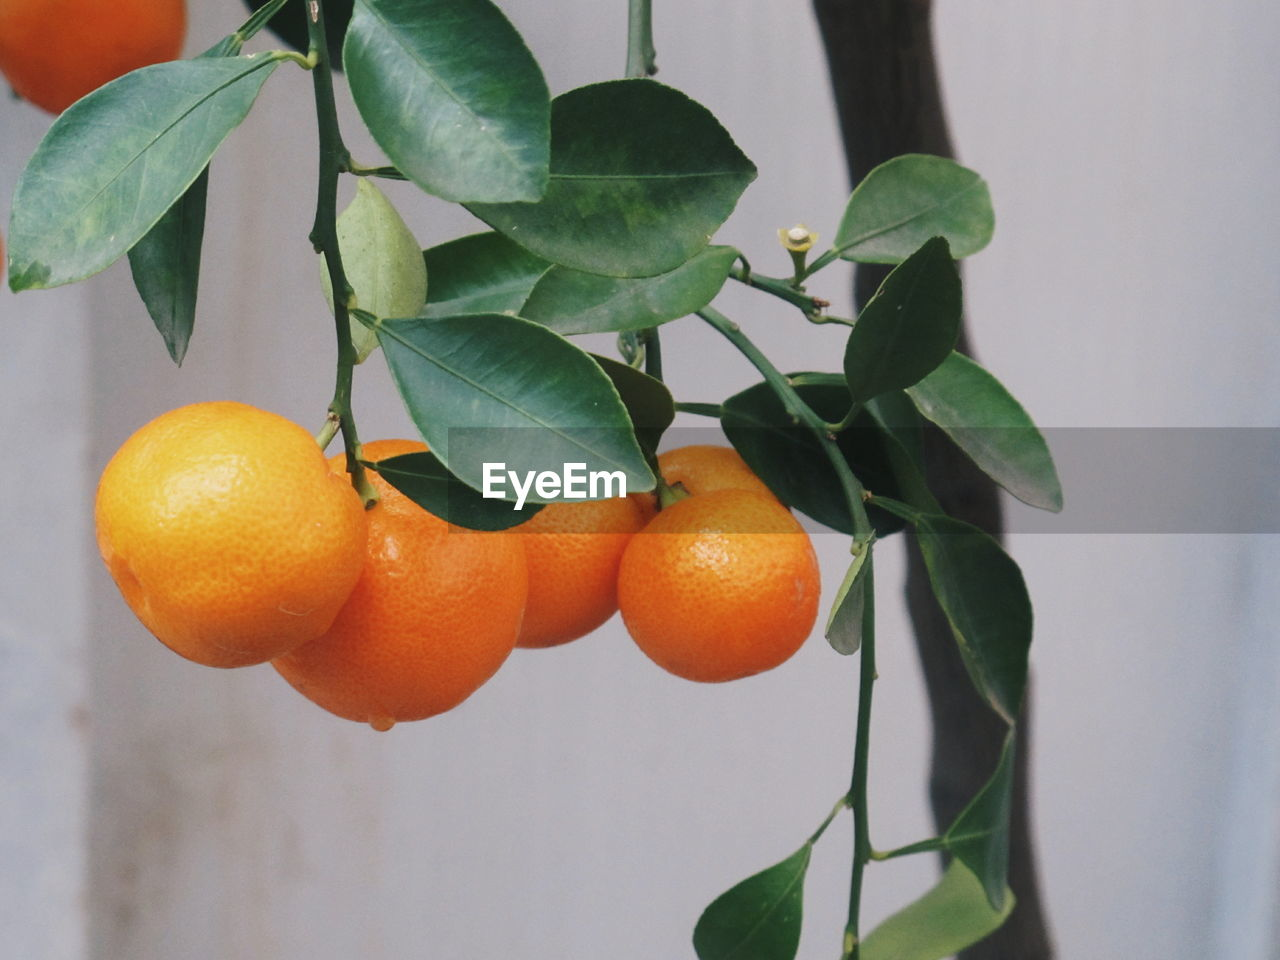 leaf, plant part, fruit, food, food and drink, healthy eating, orange color, freshness, growth, plant, citrus fruit, orange - fruit, wellbeing, nature, orange, close-up, fruit tree, focus on foreground, tree, ripe, no people, organic, outdoors